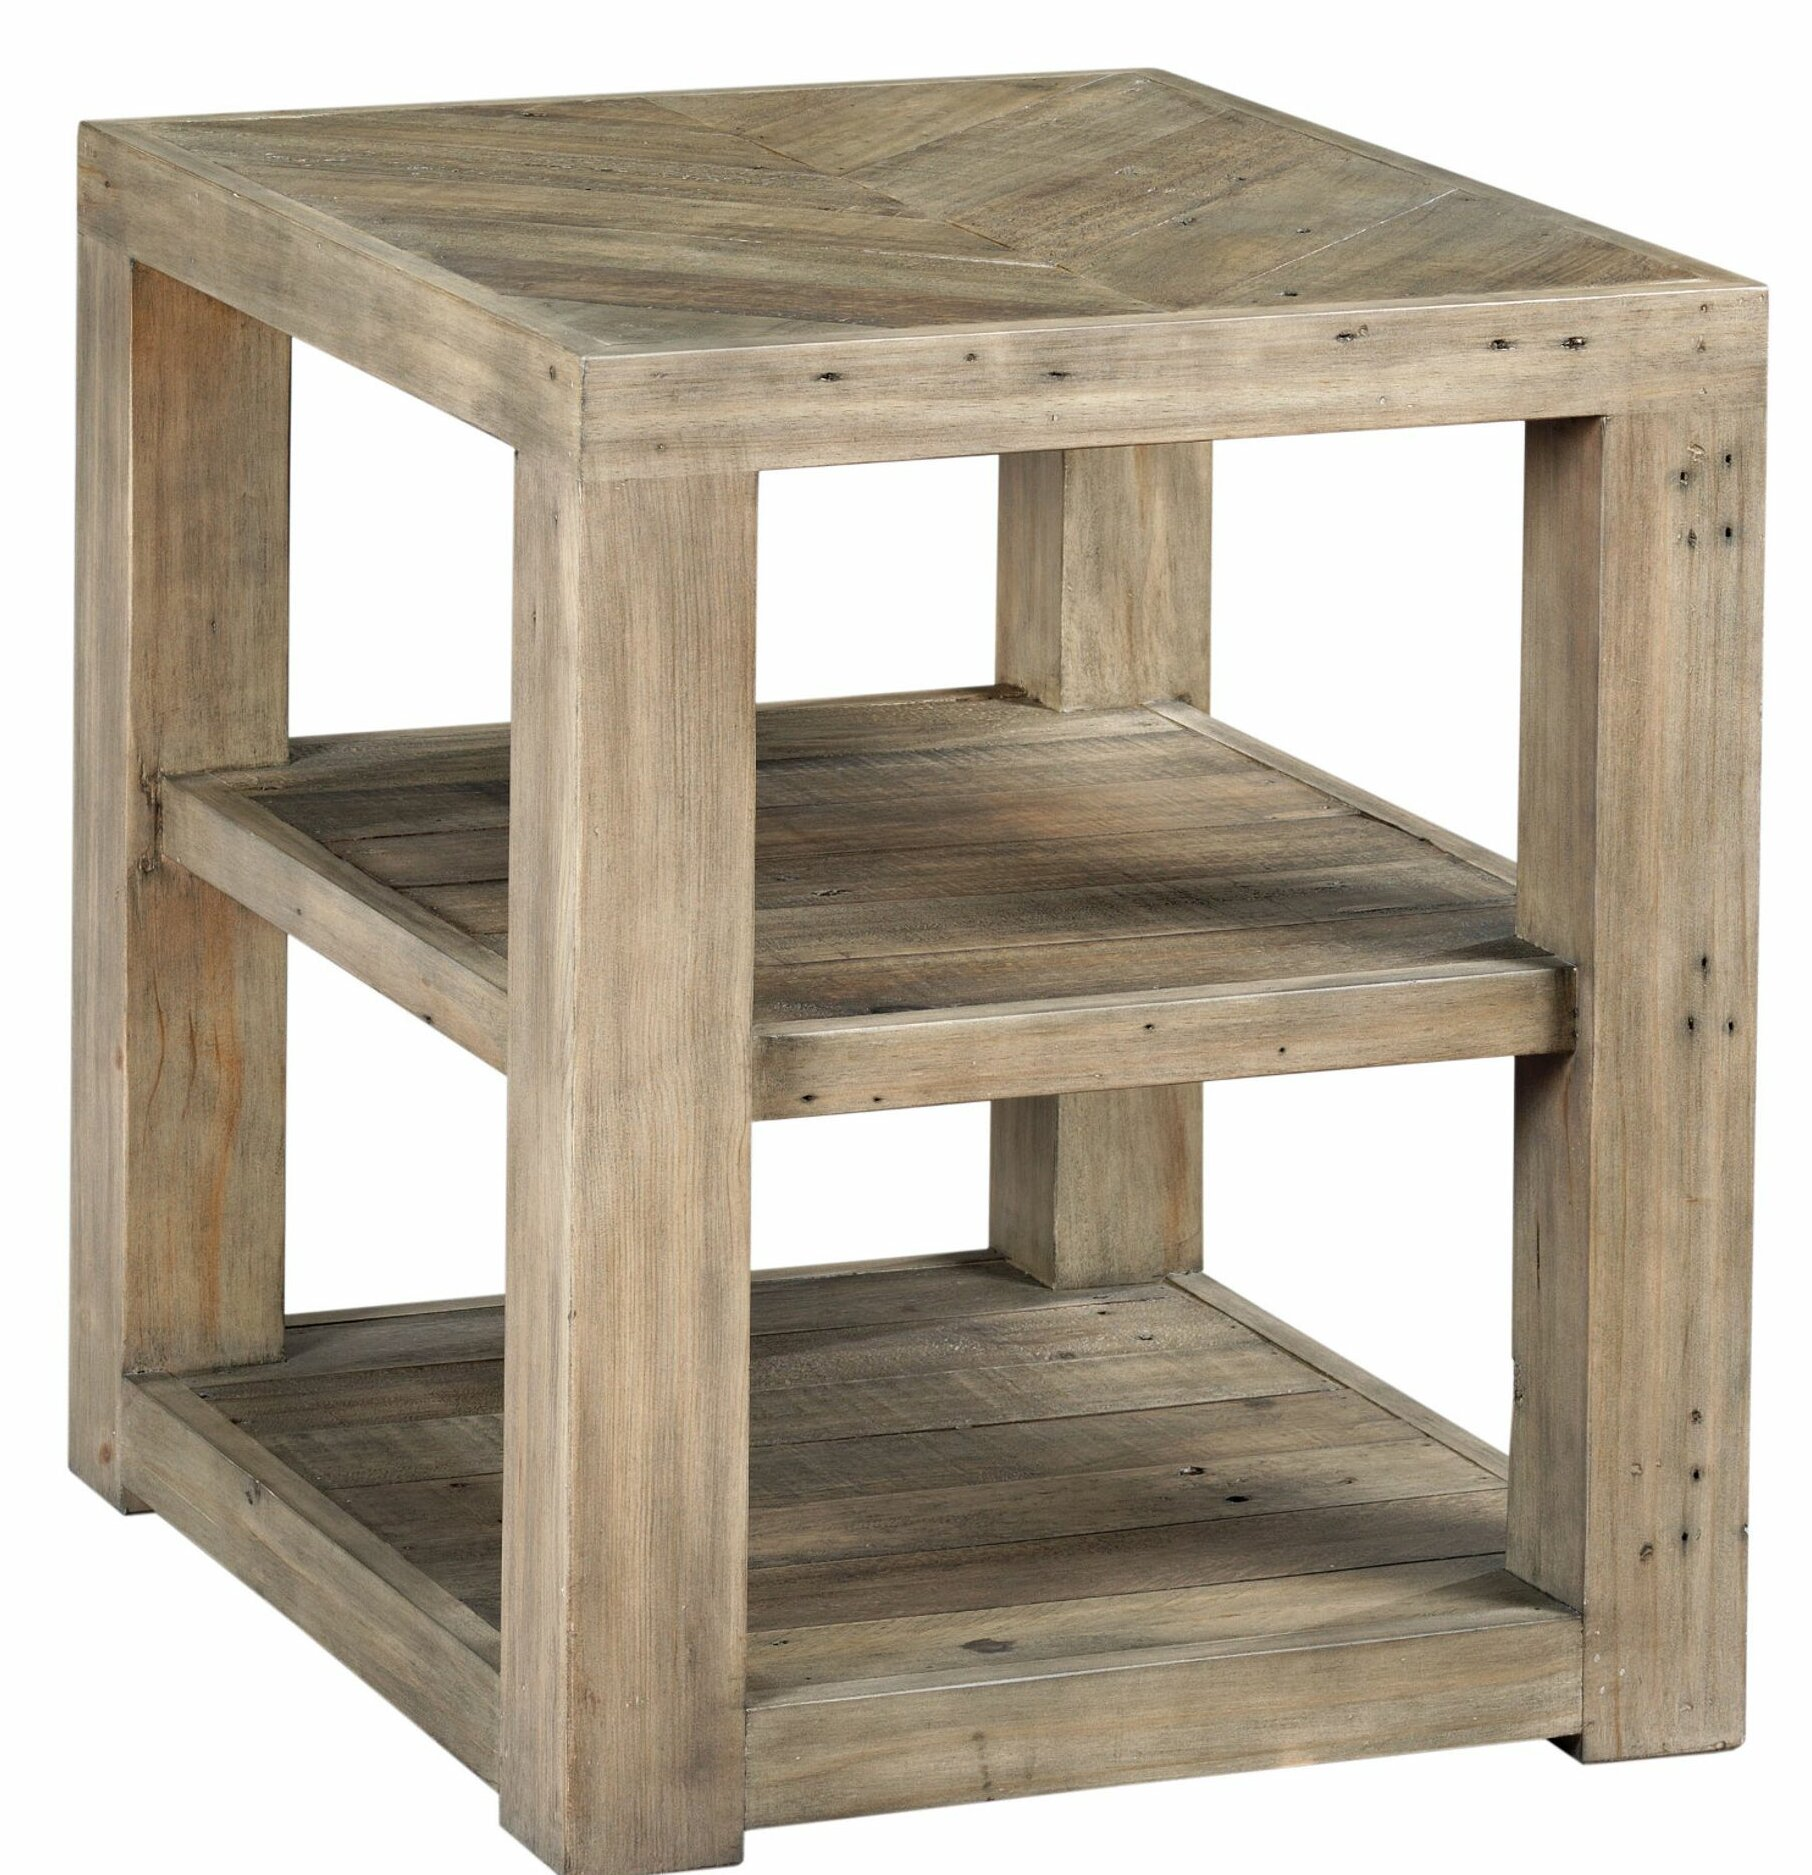 Highland Dunes Wesley Floor Shelf End Table With Storage Wayfair